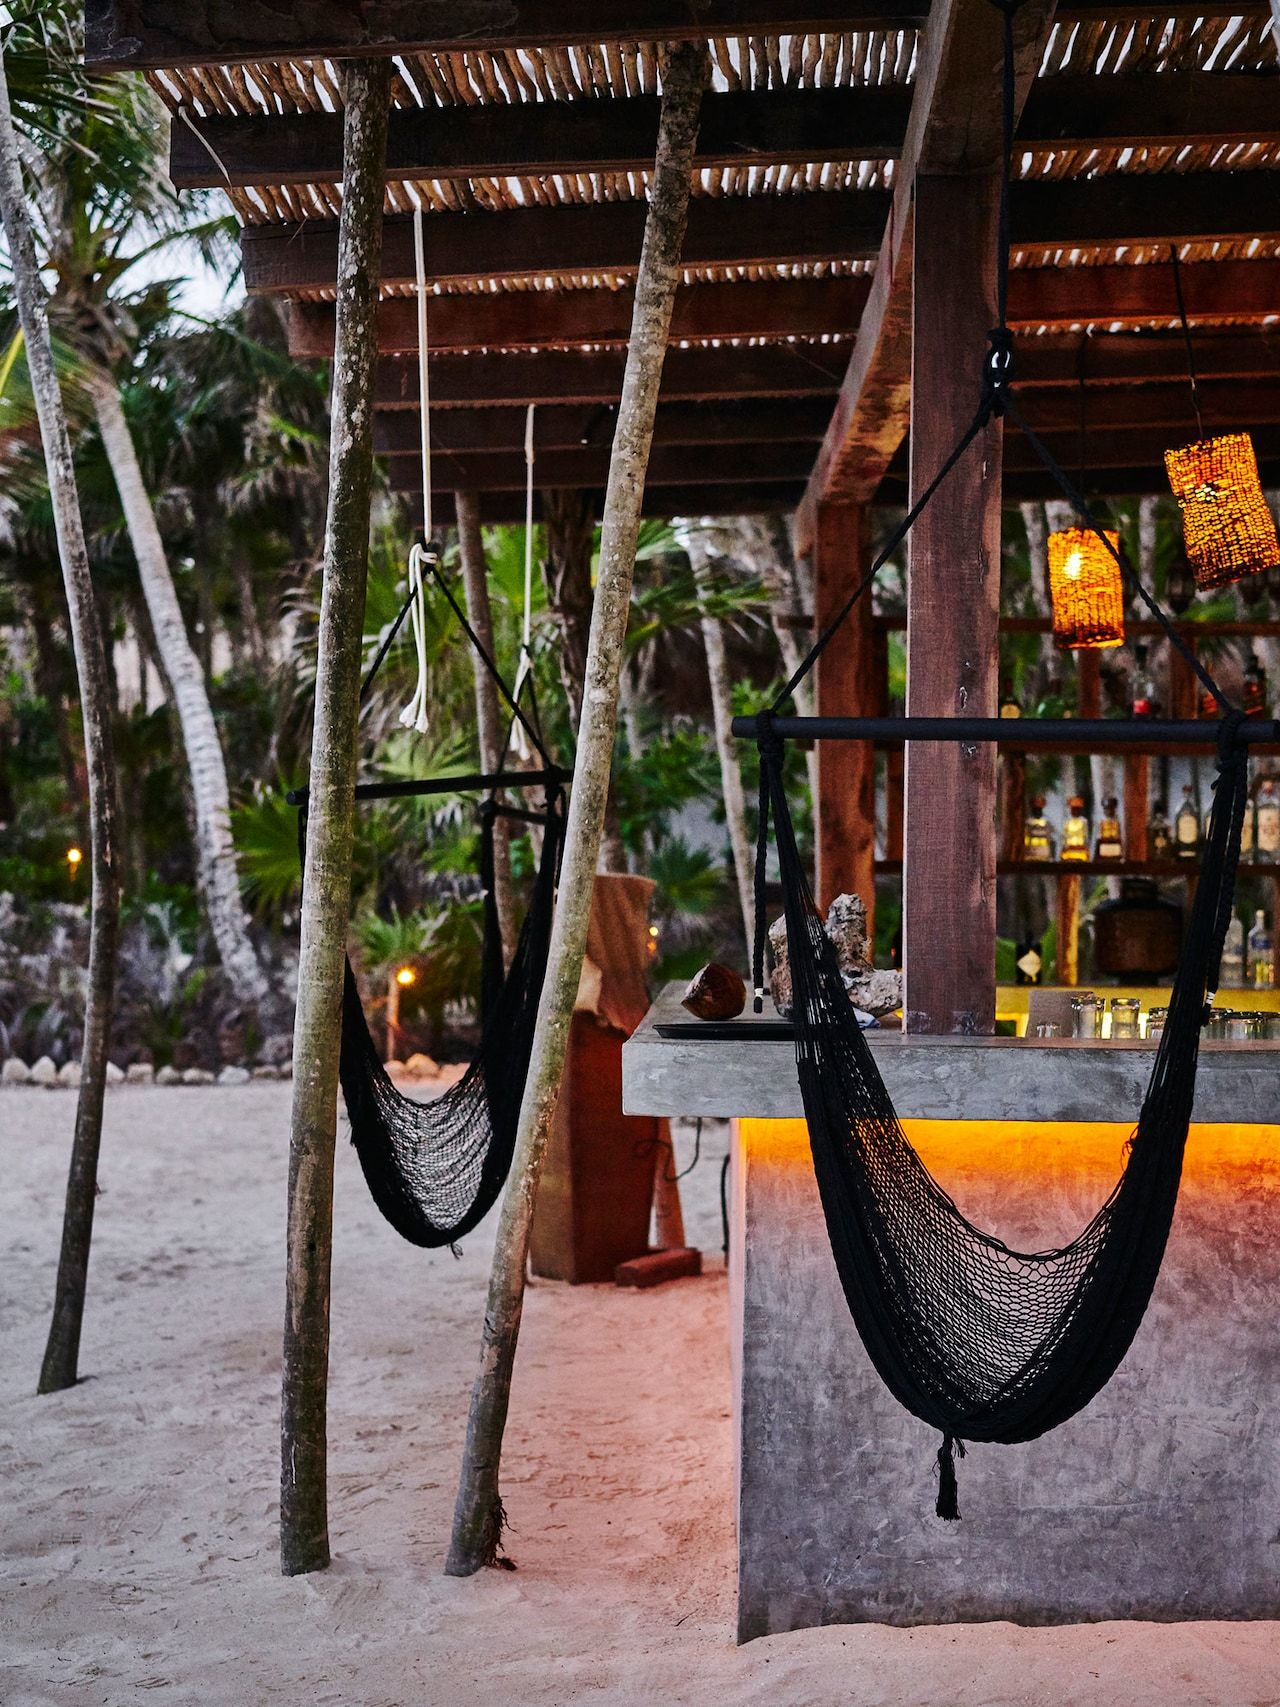 Hot hotel inside habitas mexicous coolest new ulifestyleu hotel in